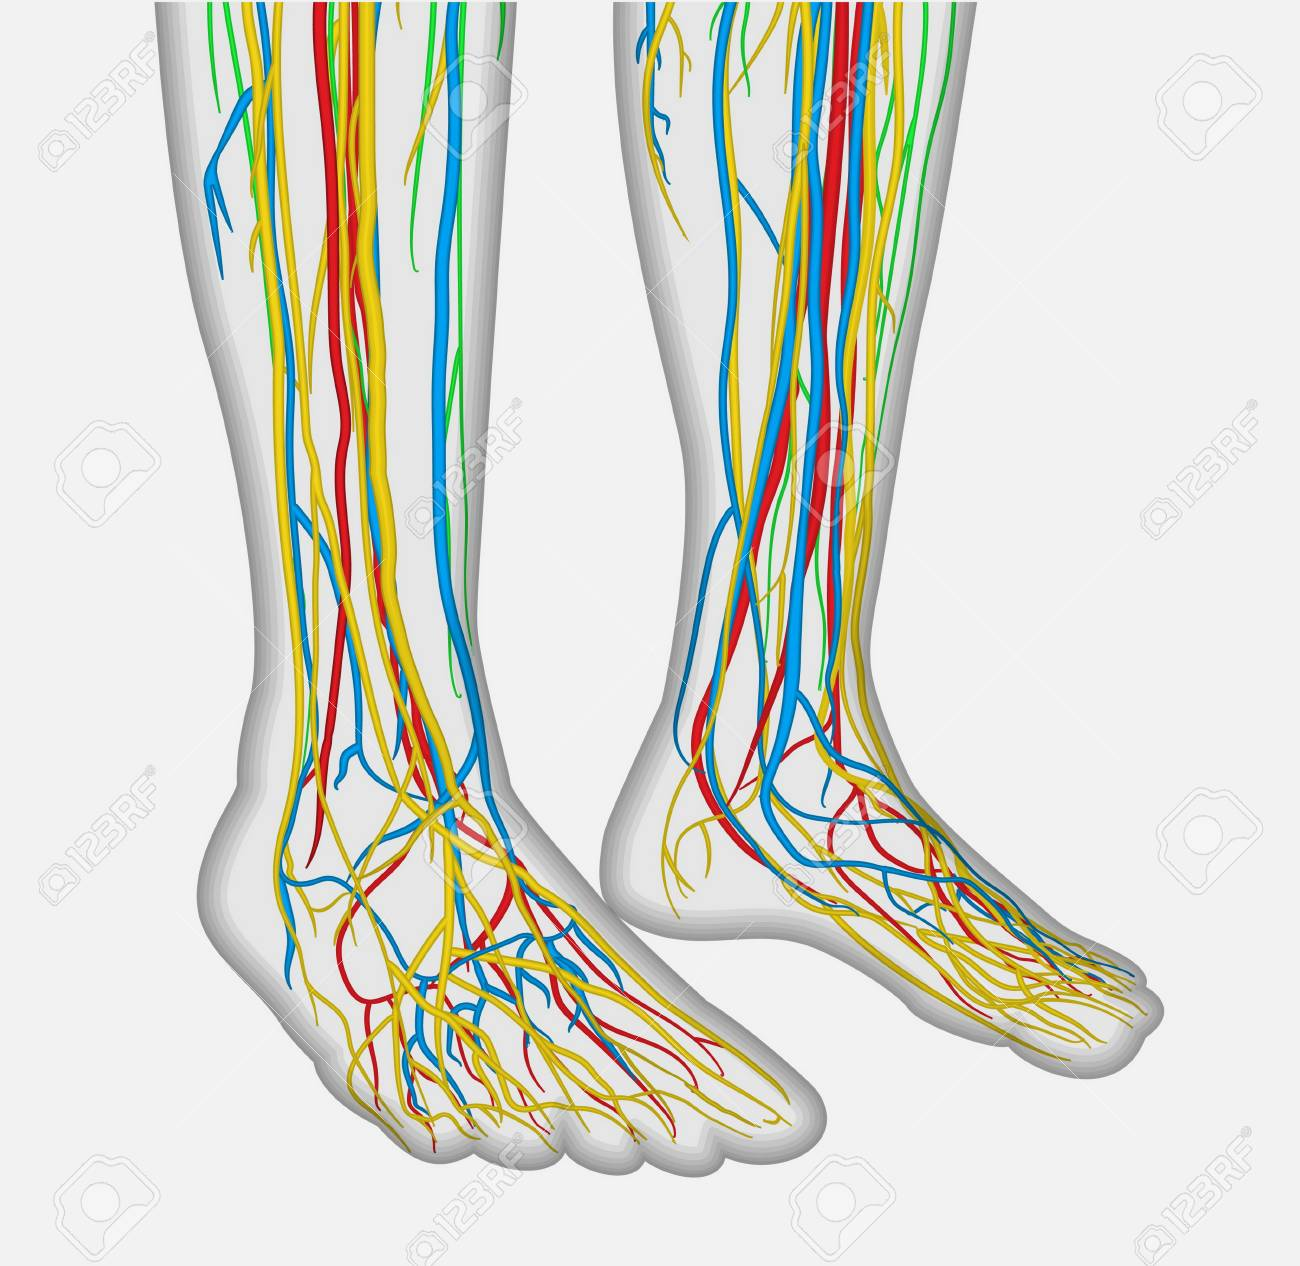 Medically Accurate Anatomy Illustration Of Human Feet Legs With